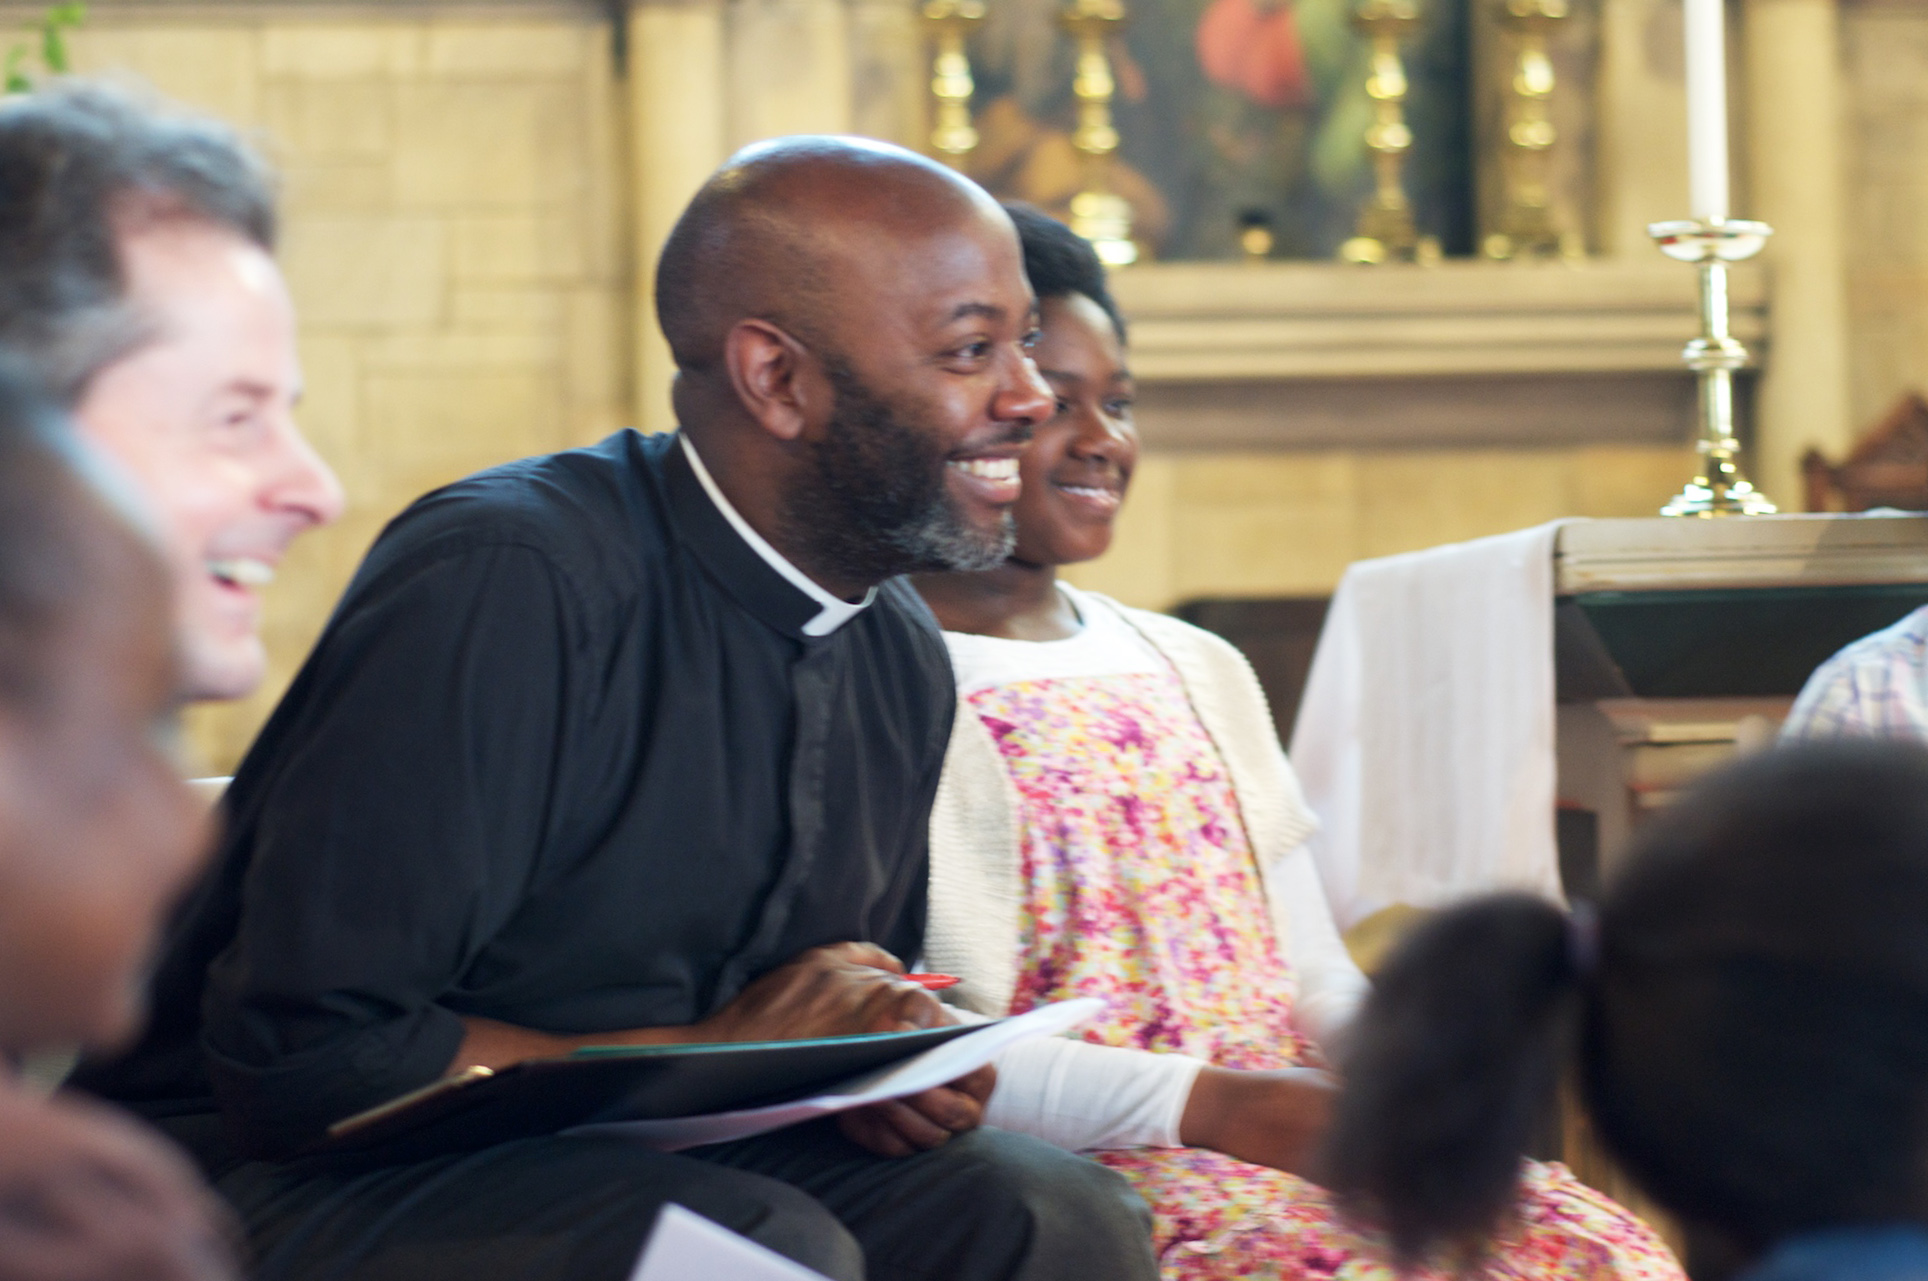 Black vicar in an Anglo Catholic parish